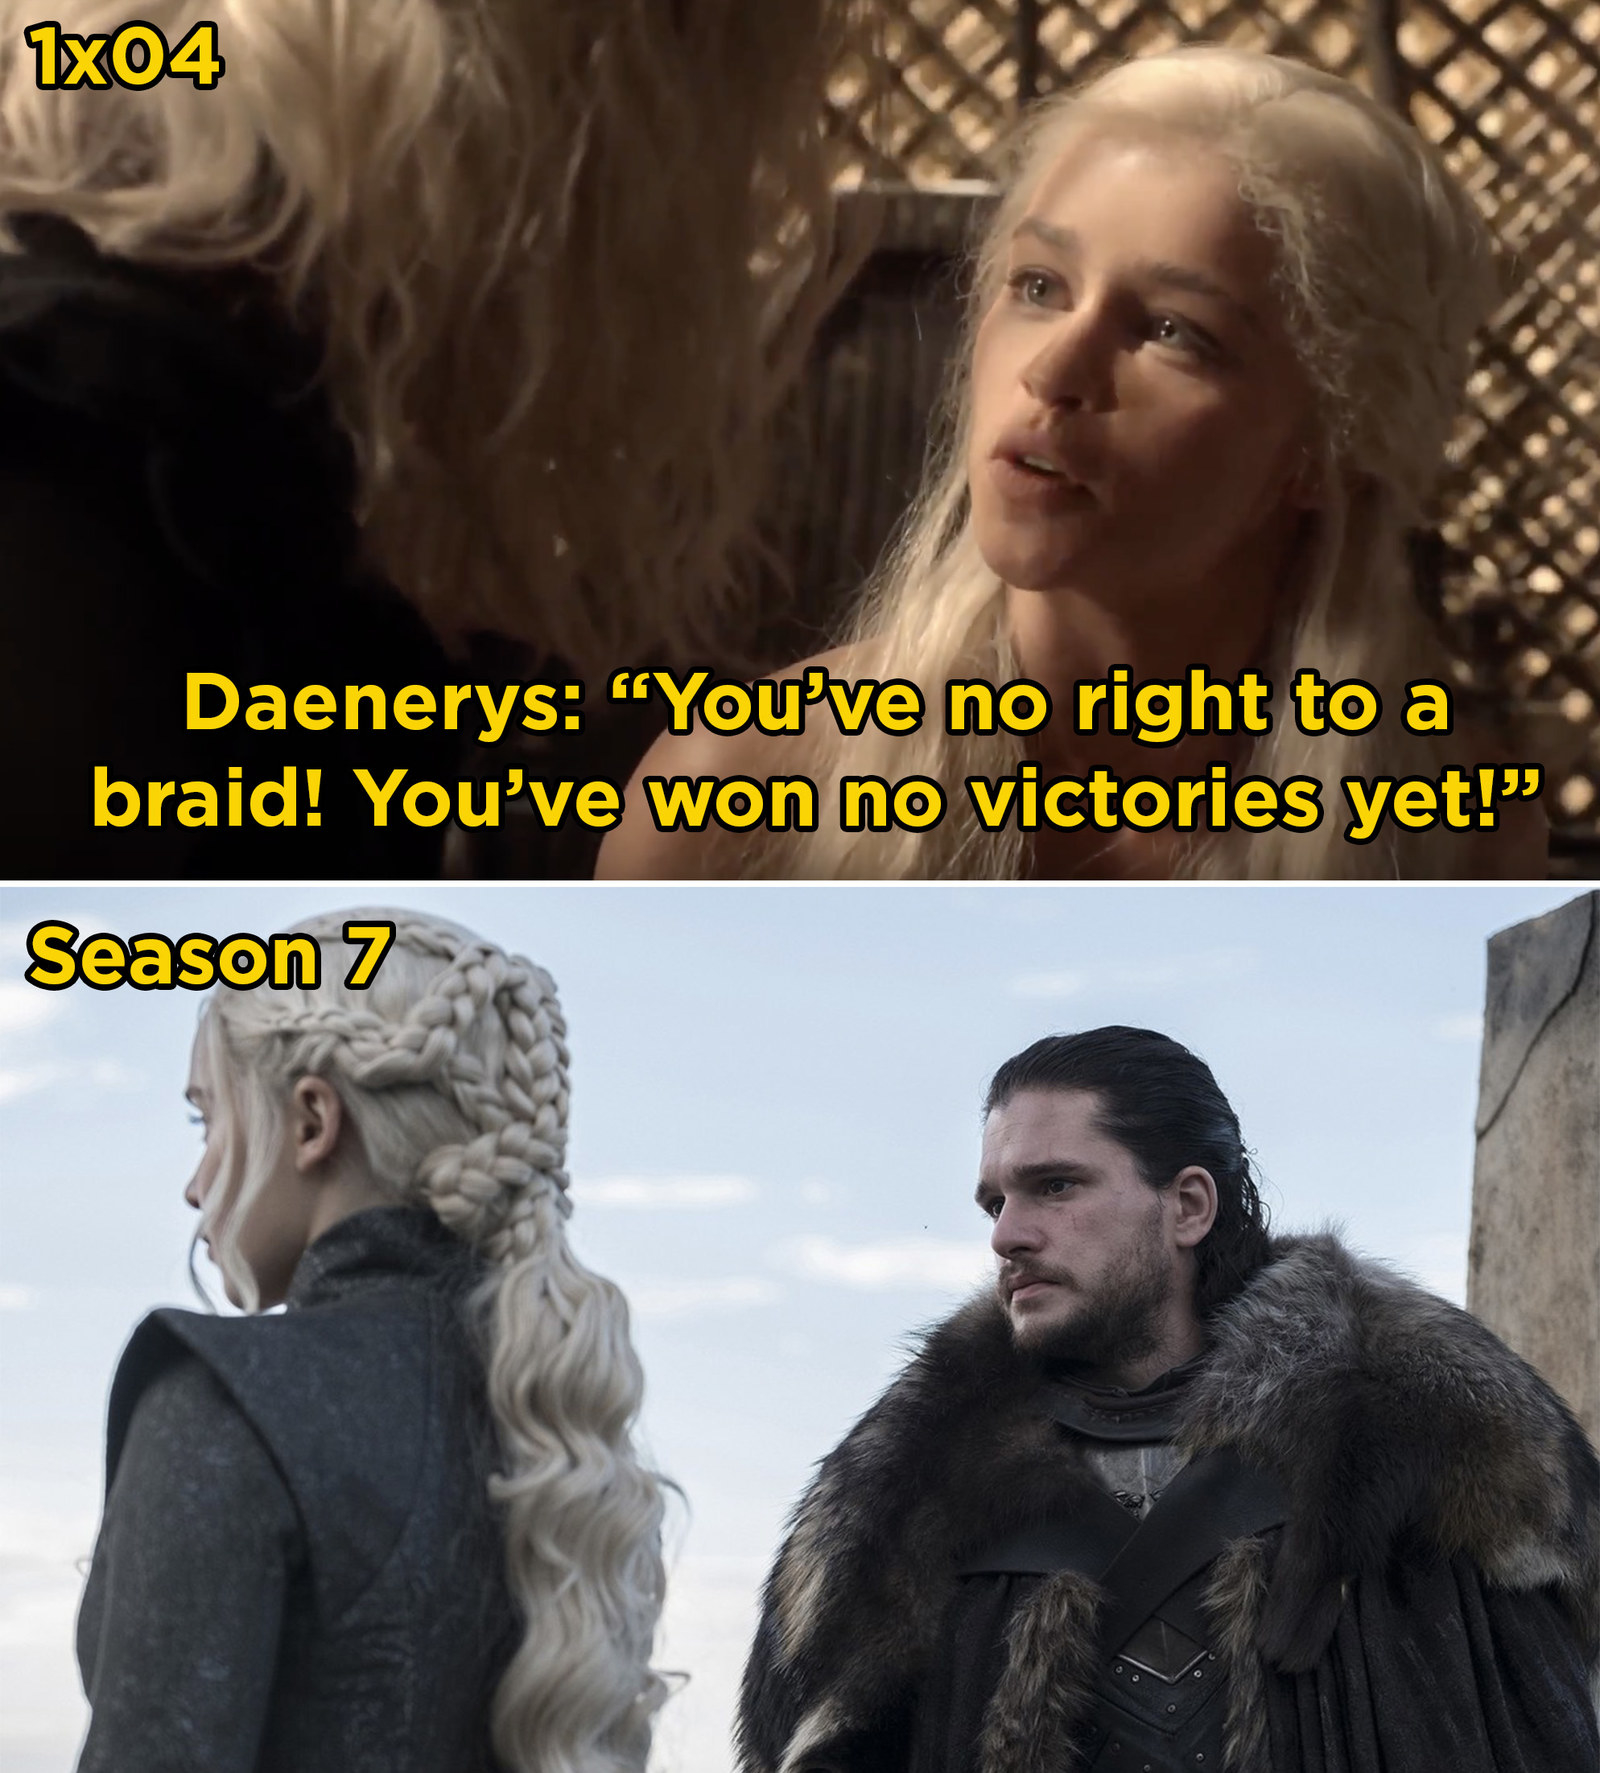 In  Game of Thrones , Daenerys mentions that braids represent the number of victories a person has won. As the series continues, you can see that she adds more and more braids.